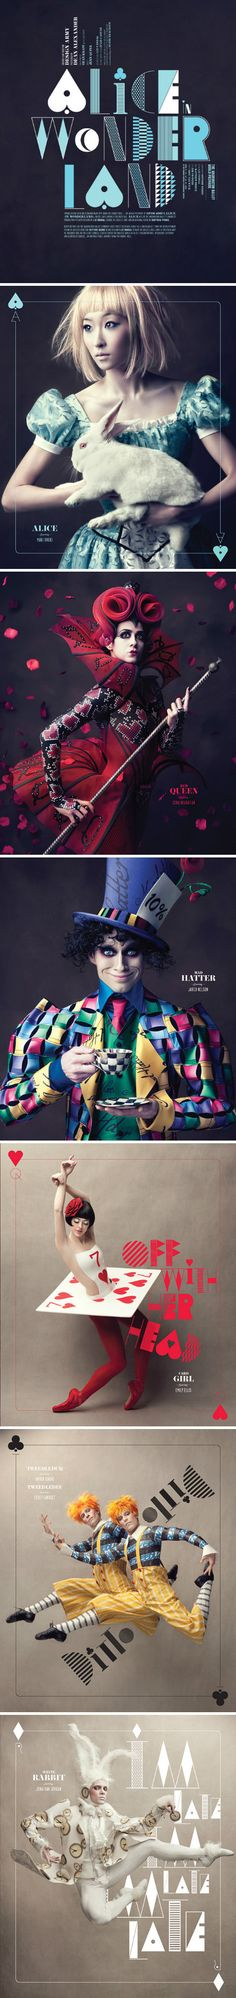 Alice in Wonderland. Tipografia, fotos e fantasias: tudo lindo.